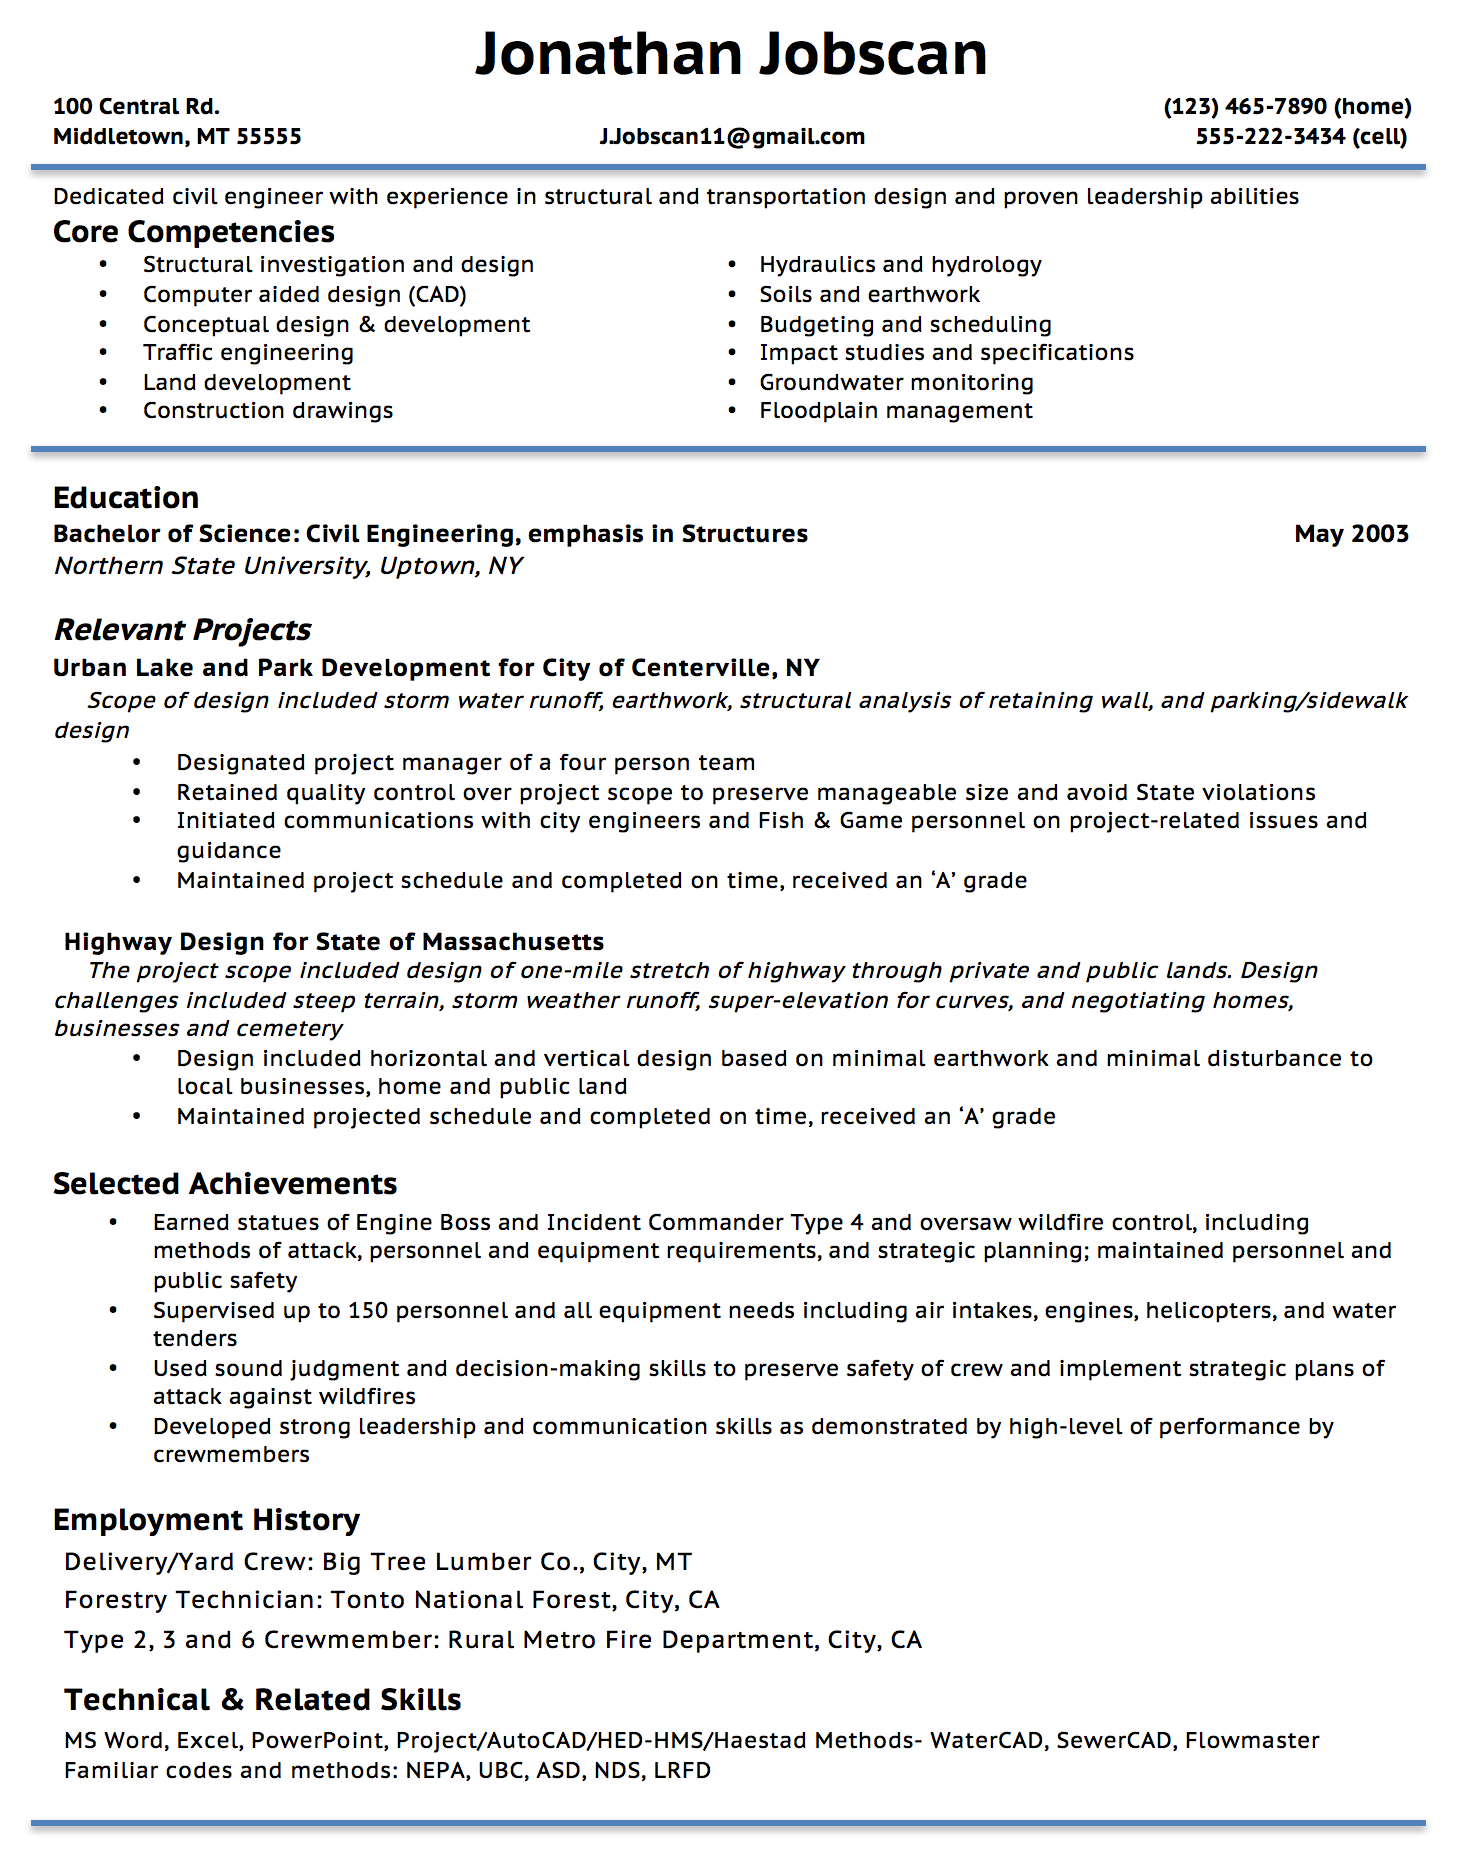 Opposenewapstandardsus  Personable Resume Writing Guide  Jobscan With Fair Example Of A Functional Resume Format With Attractive Generic Resume Template Also Cna Description For Resume In Addition Resume Address Format And Resume Builder Free No Sign Up As Well As Printable Resumes Additionally Service Technician Resume From Jobscanco With Opposenewapstandardsus  Fair Resume Writing Guide  Jobscan With Attractive Example Of A Functional Resume Format And Personable Generic Resume Template Also Cna Description For Resume In Addition Resume Address Format From Jobscanco